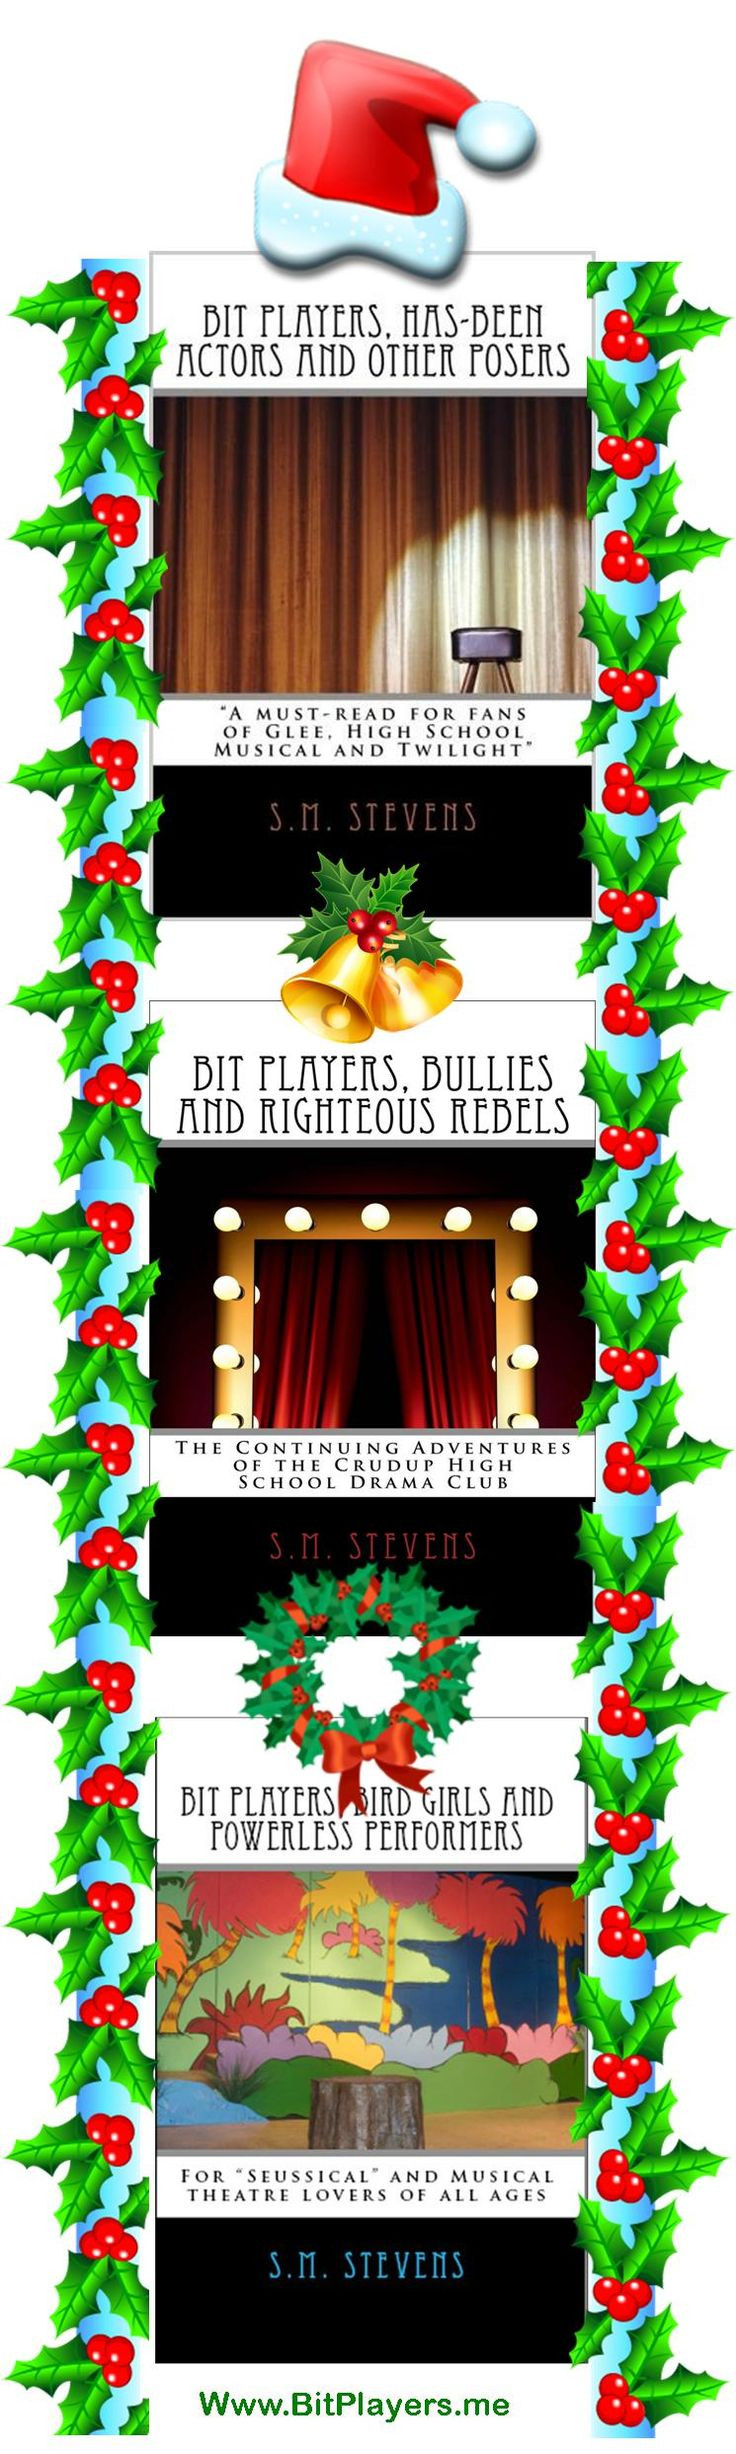 Best ideas about Gift Ideas For Theatre Lovers . Save or Pin 17 Best images about Stage Set & Prop Ideas on Pinterest Now.